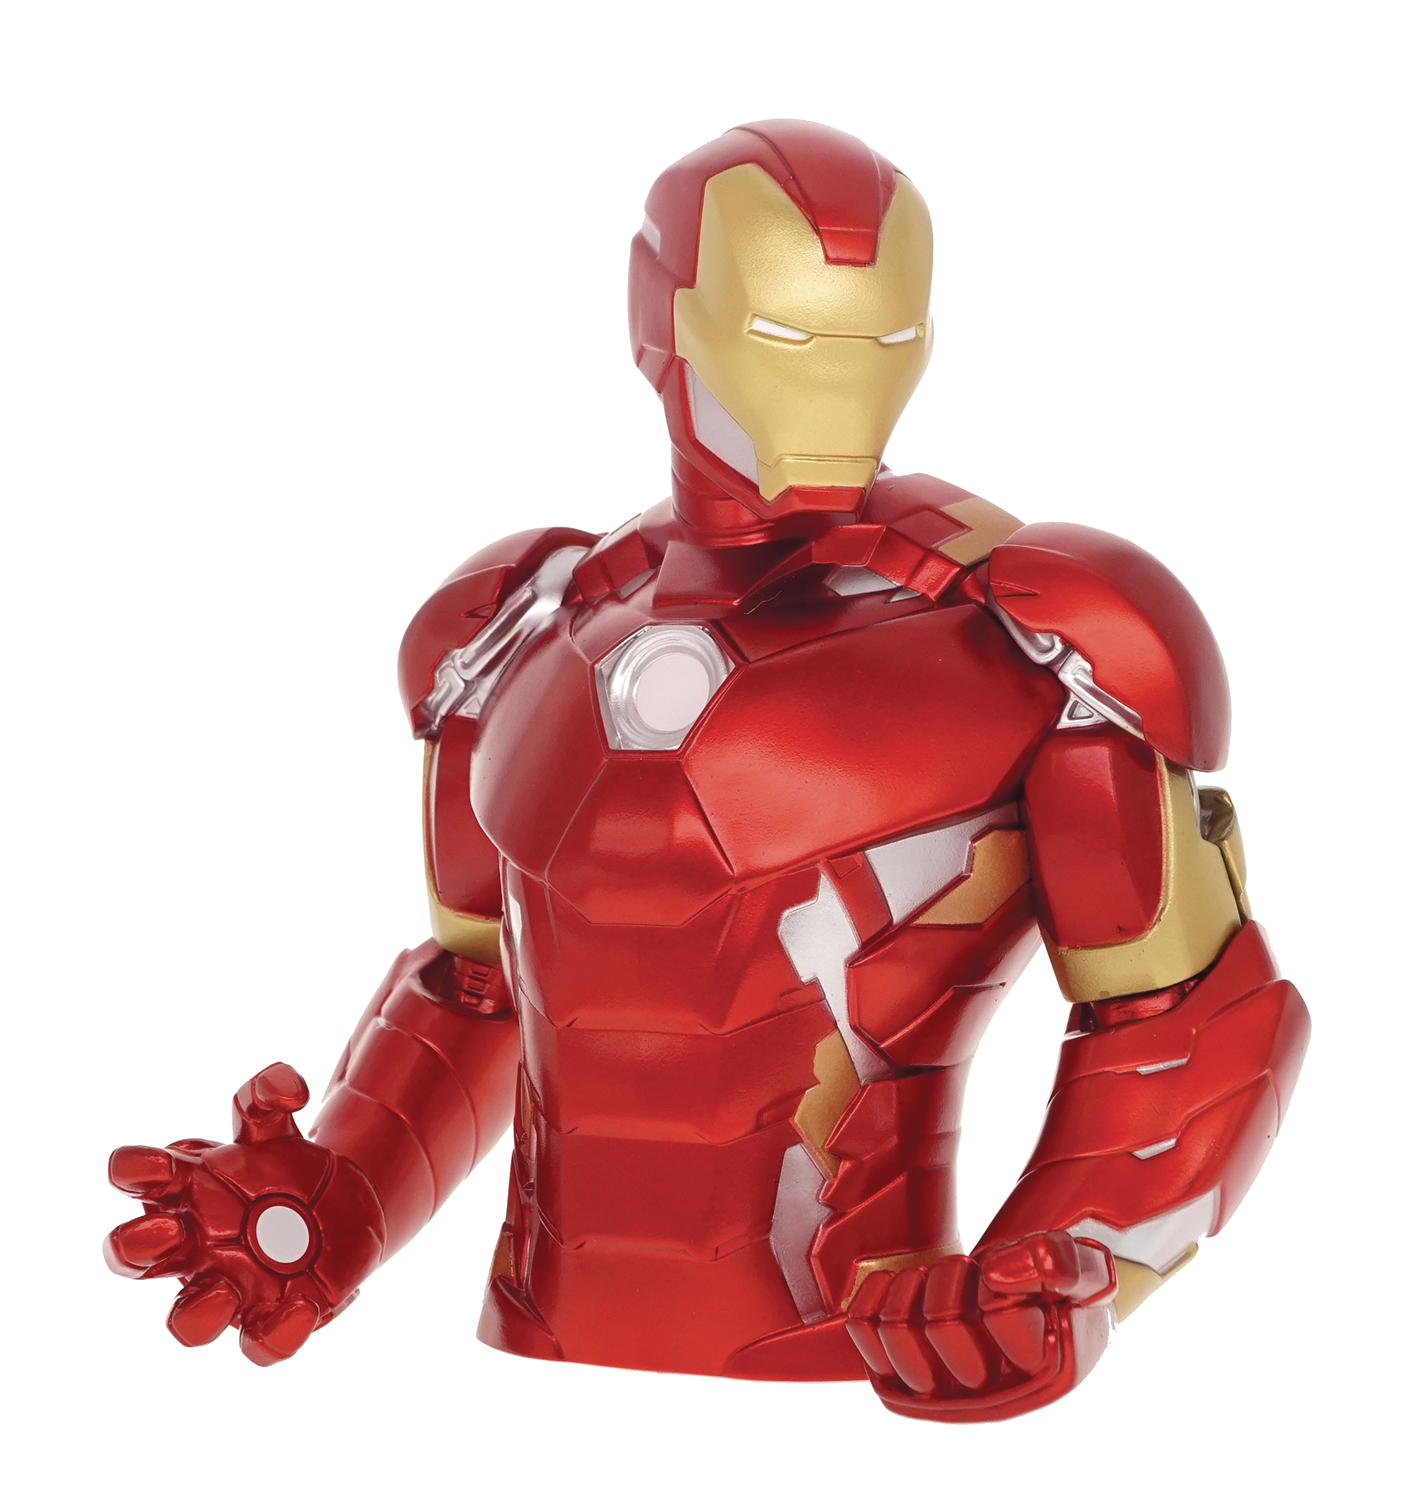 AVENGERS IRON MAN PVC BUST BANK